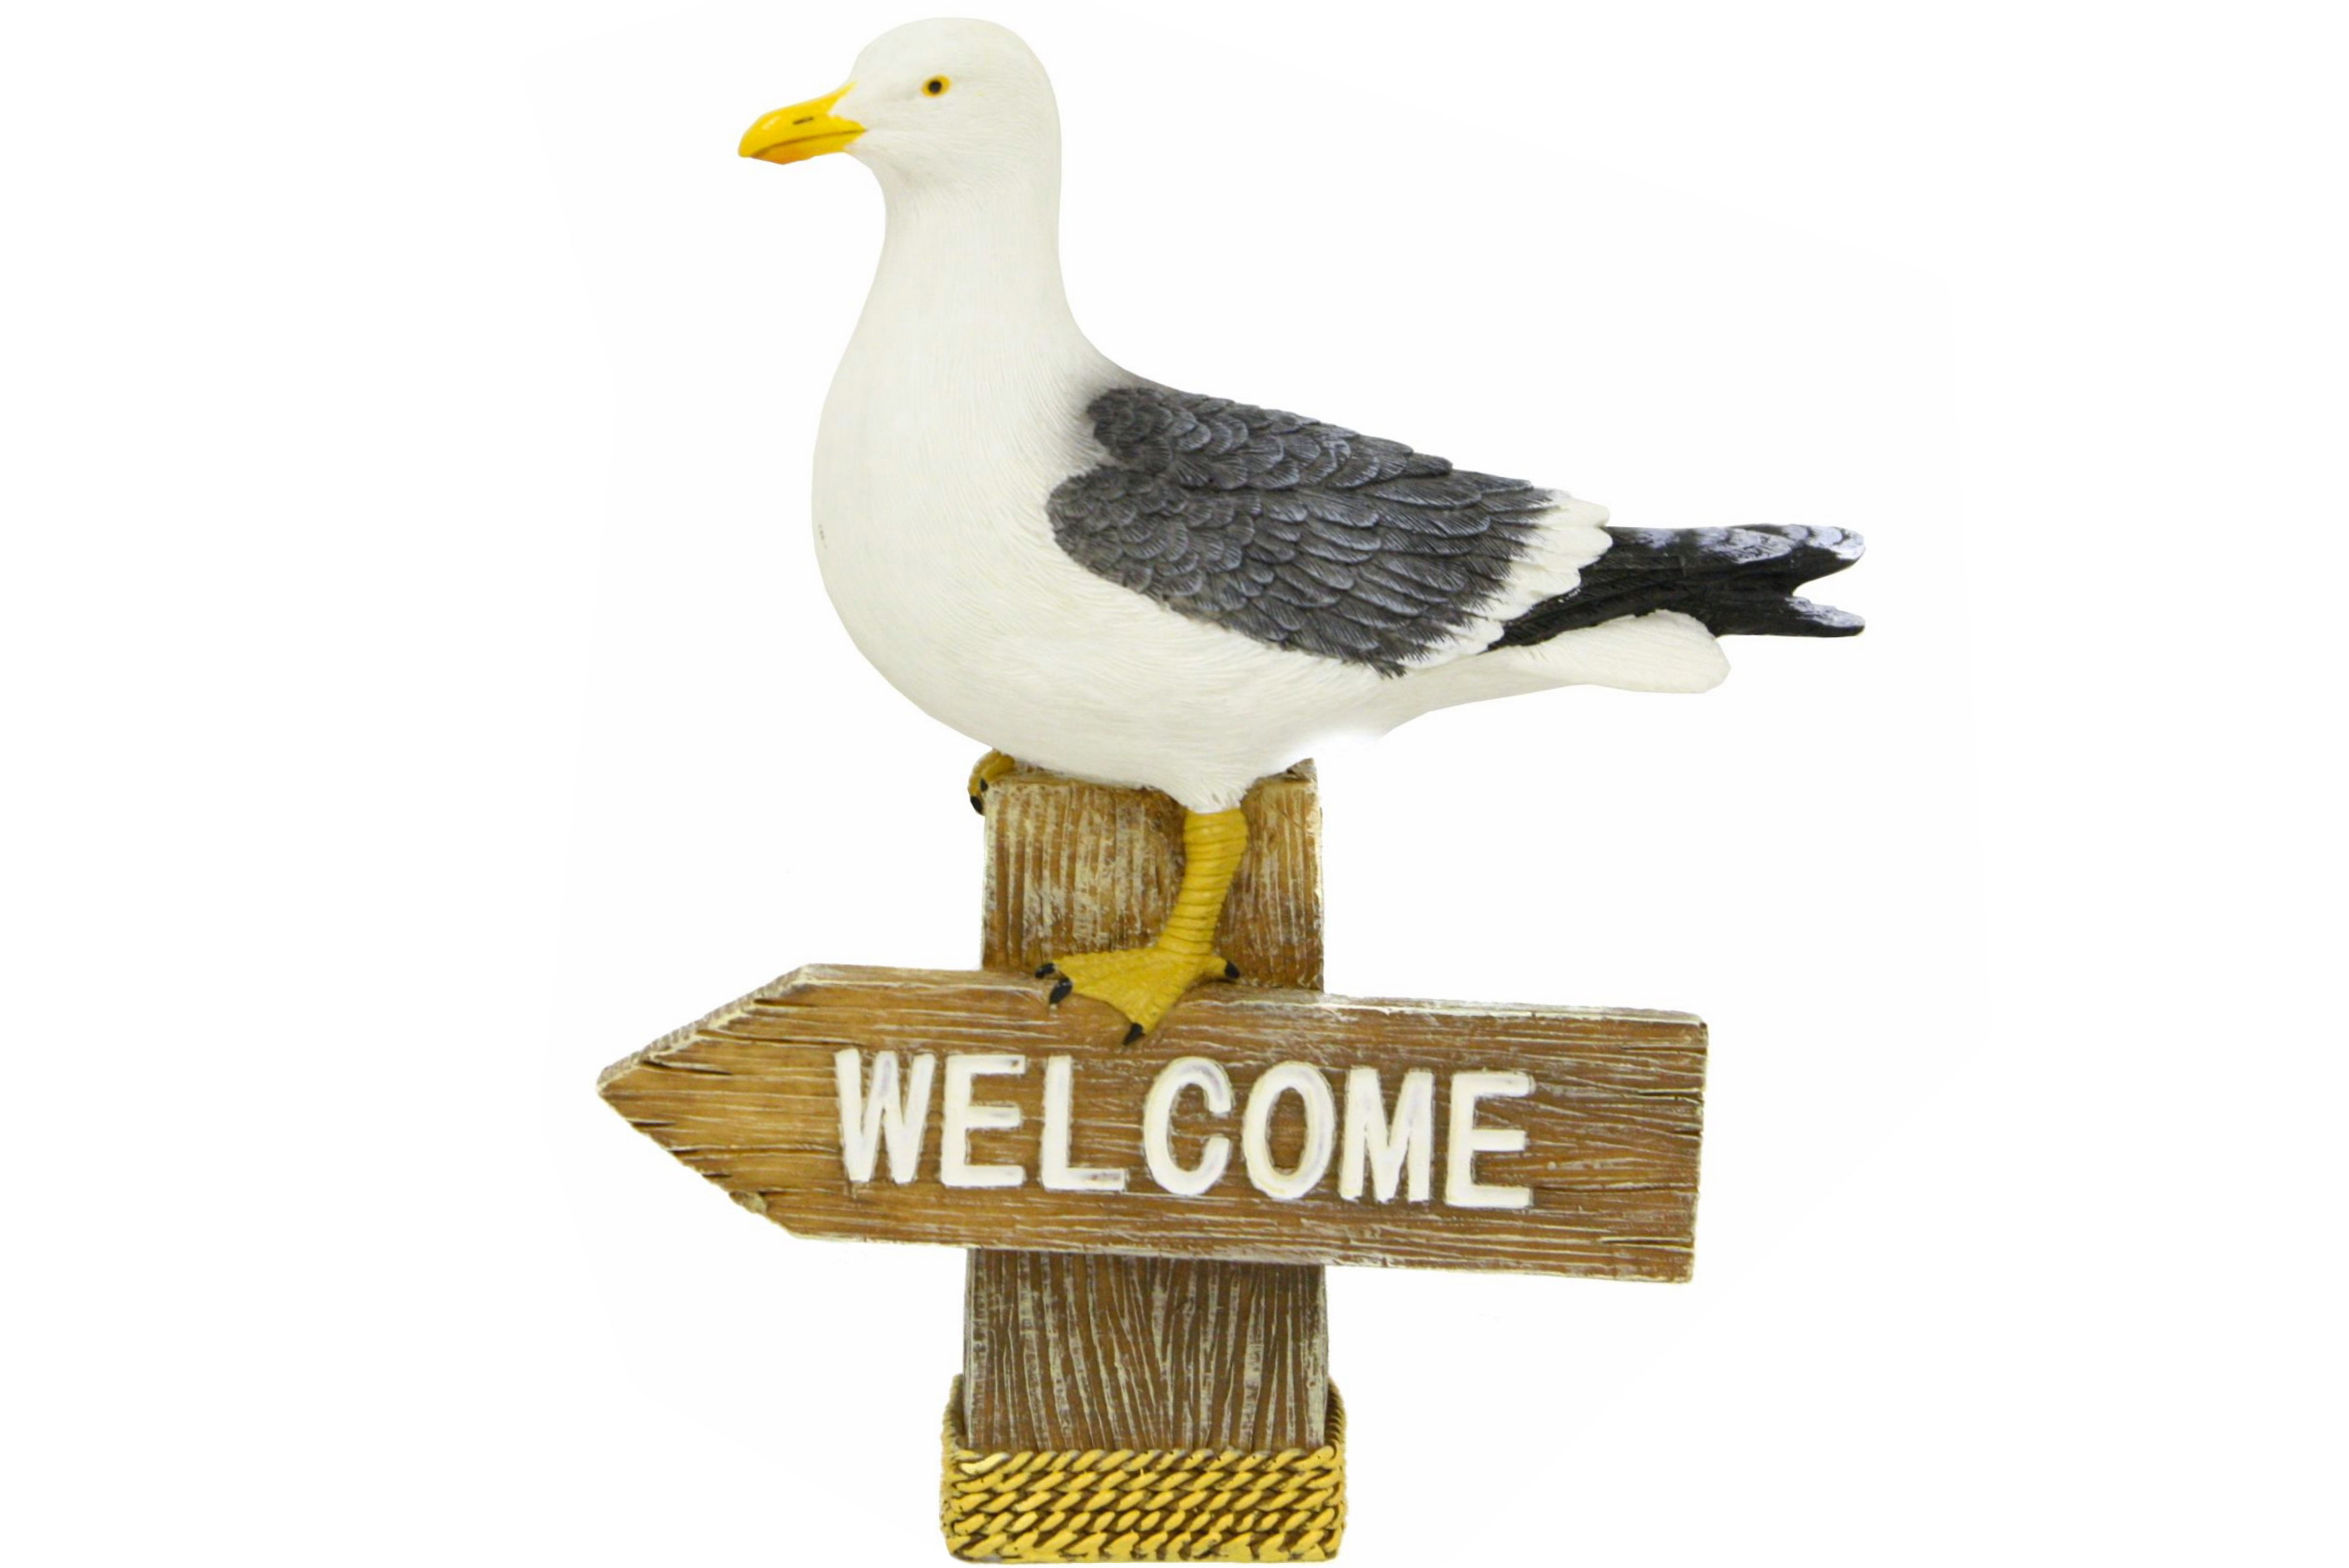 Resin Seagull On Welcome Sign 14cm x 17cm x 4cm